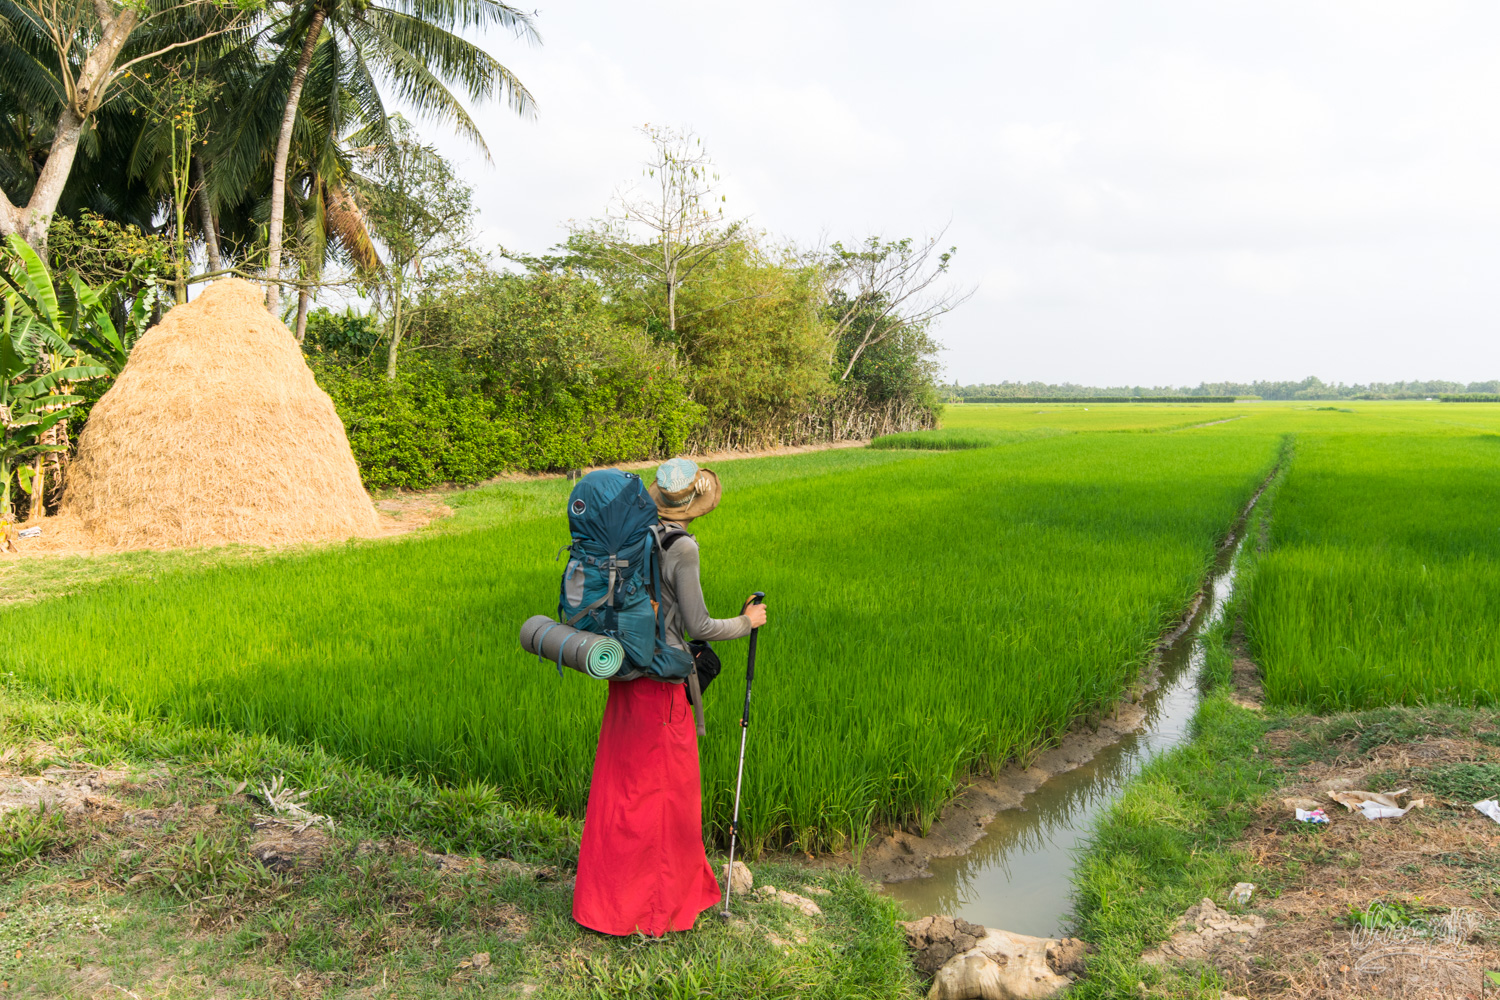 Lost in the green world of the Mekong Delta